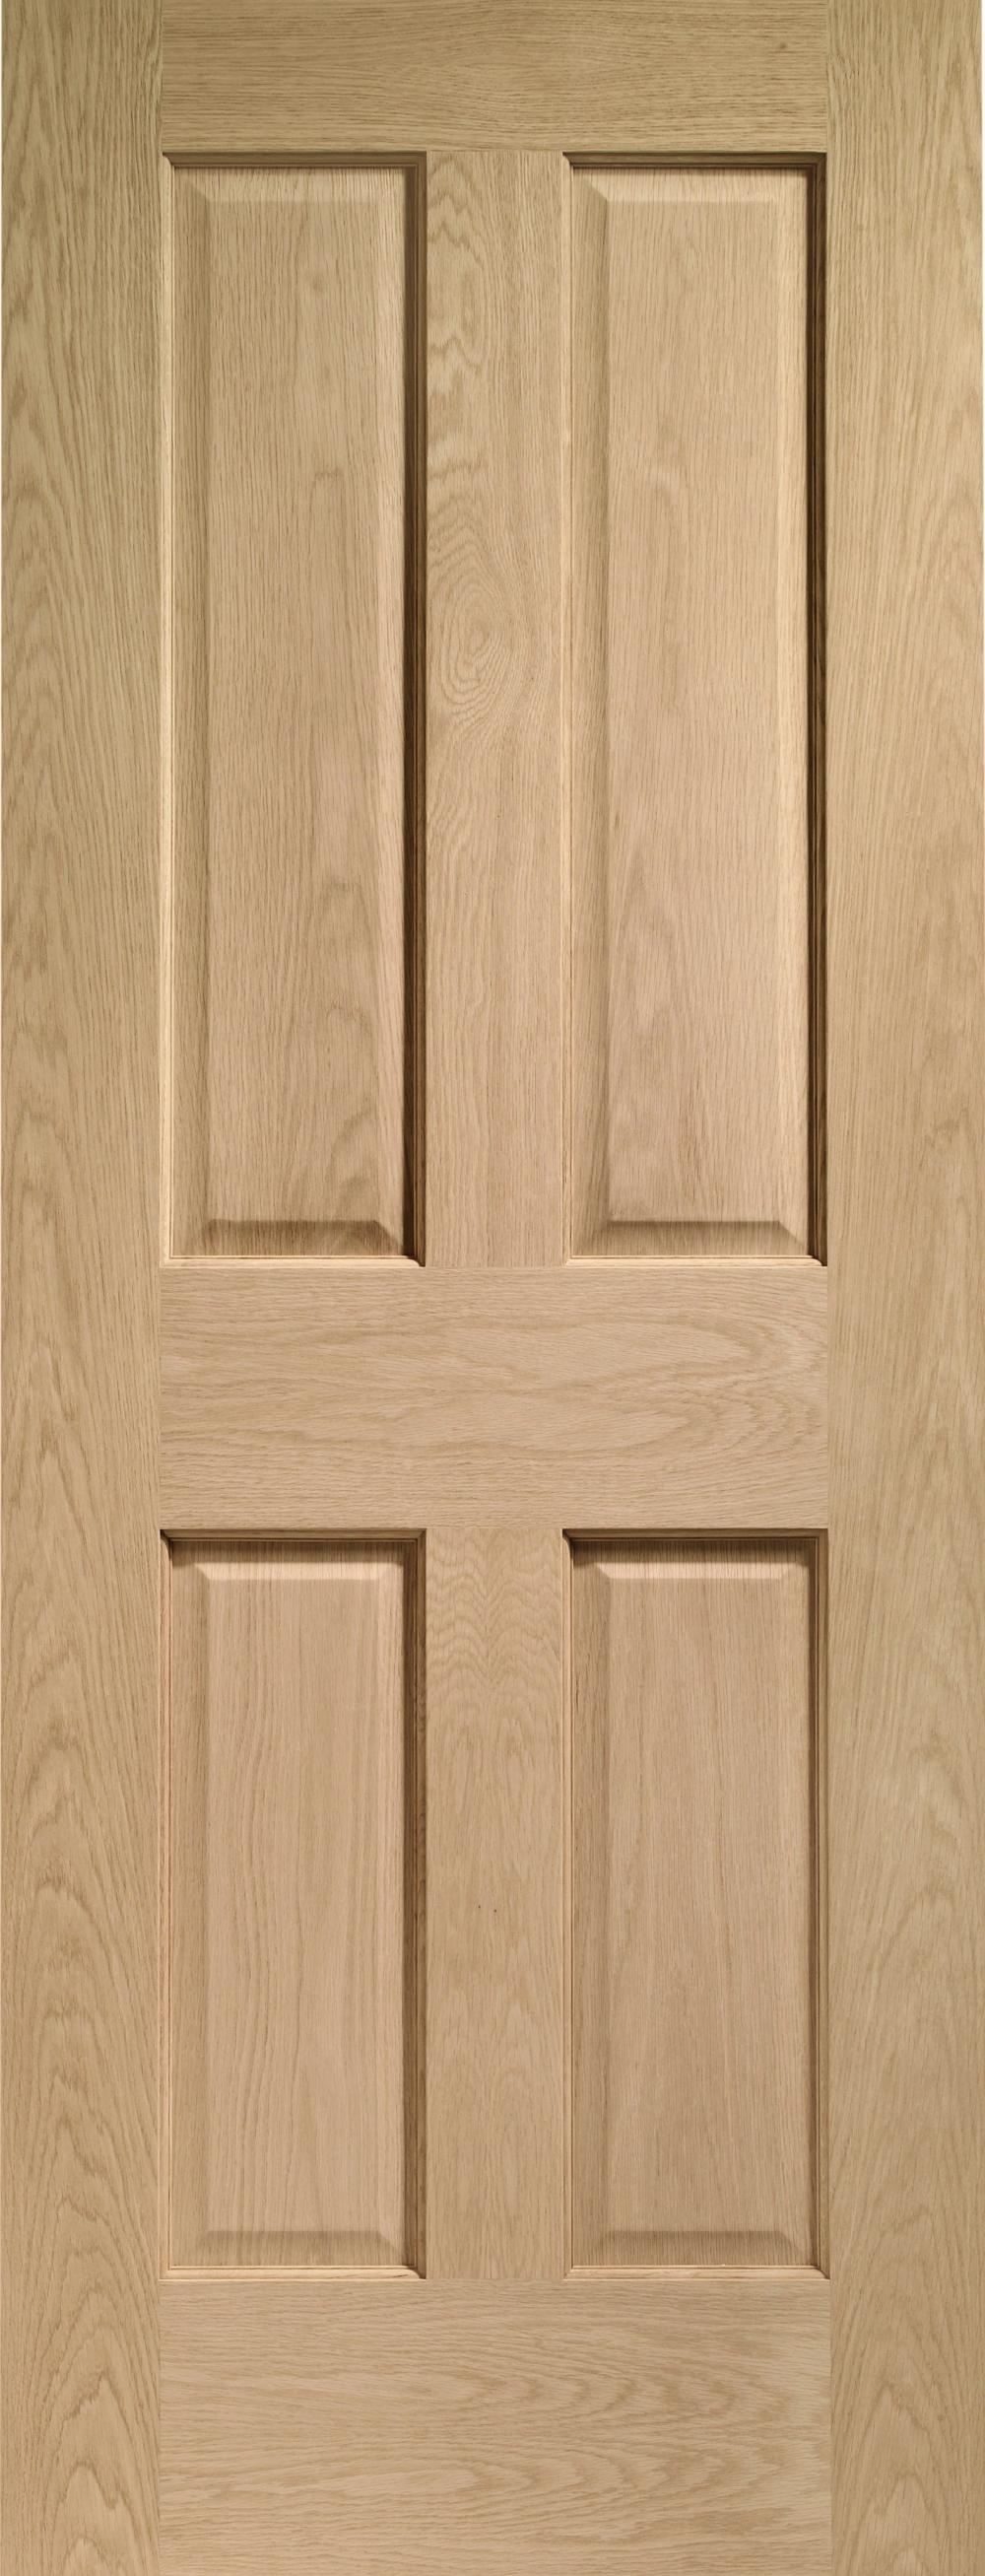 Victorian Oak 4 Panel Interior Door Express Doors